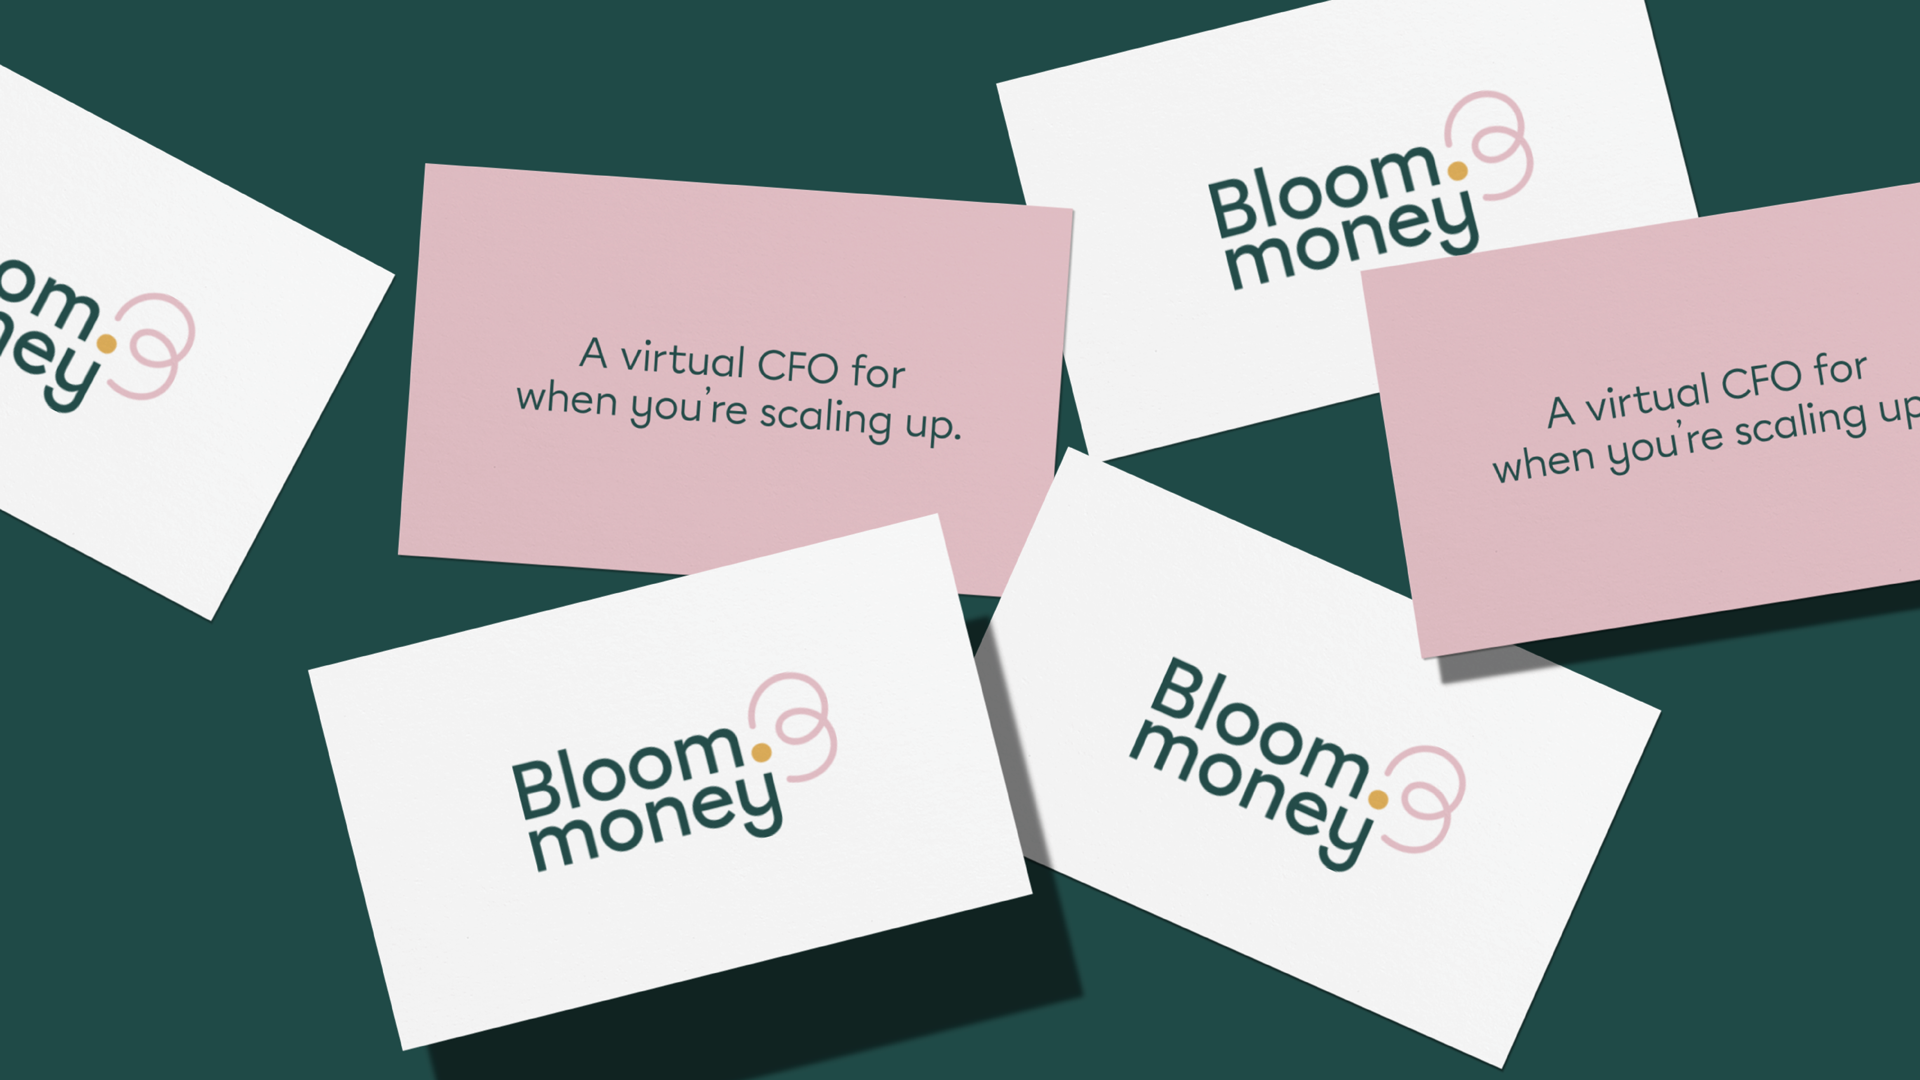 Bloom-BusinessCard-Proposal-By-Sundae